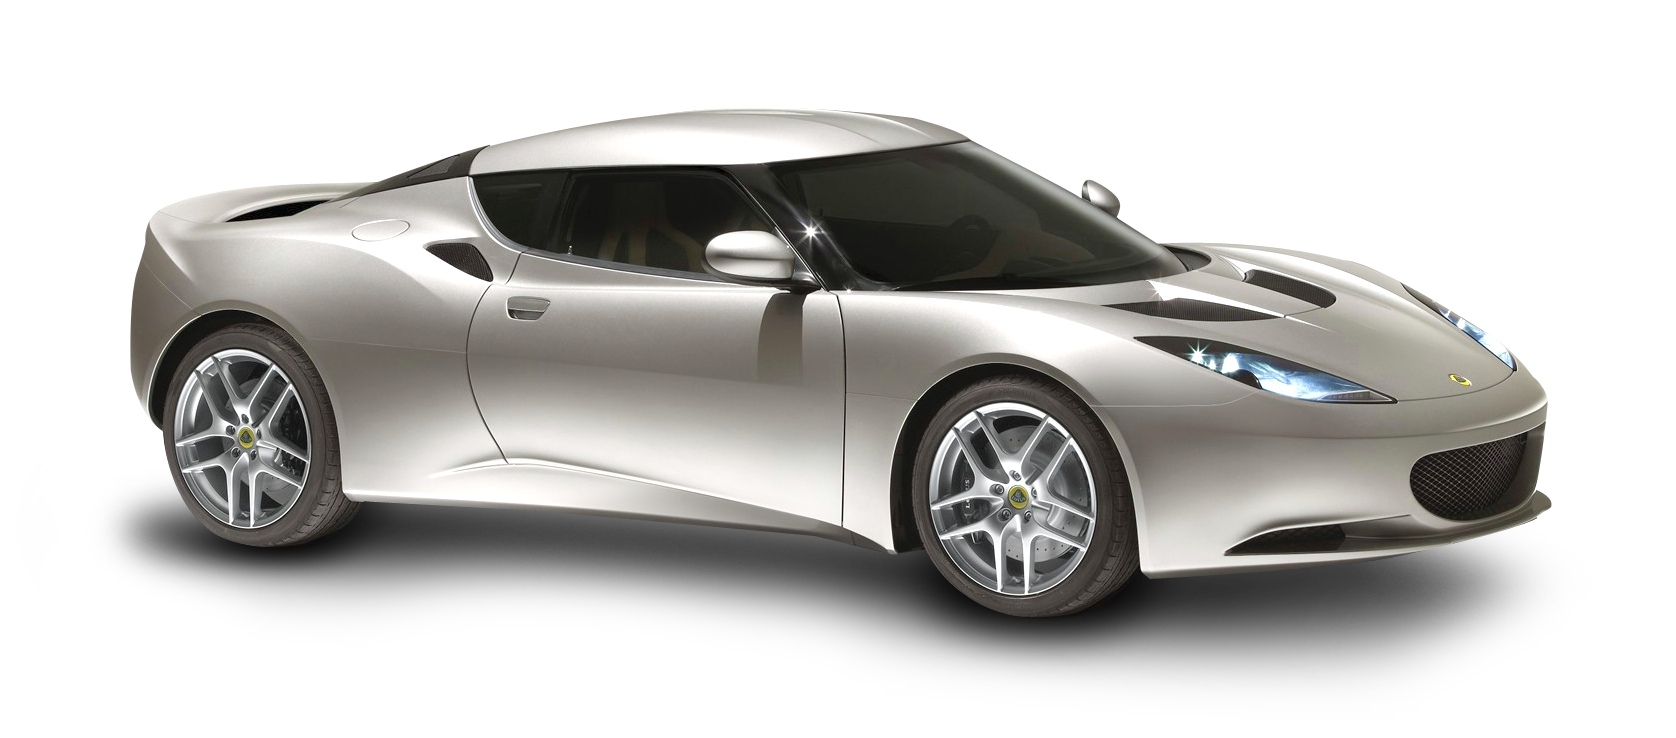 Lotus Evora Car PNG Image